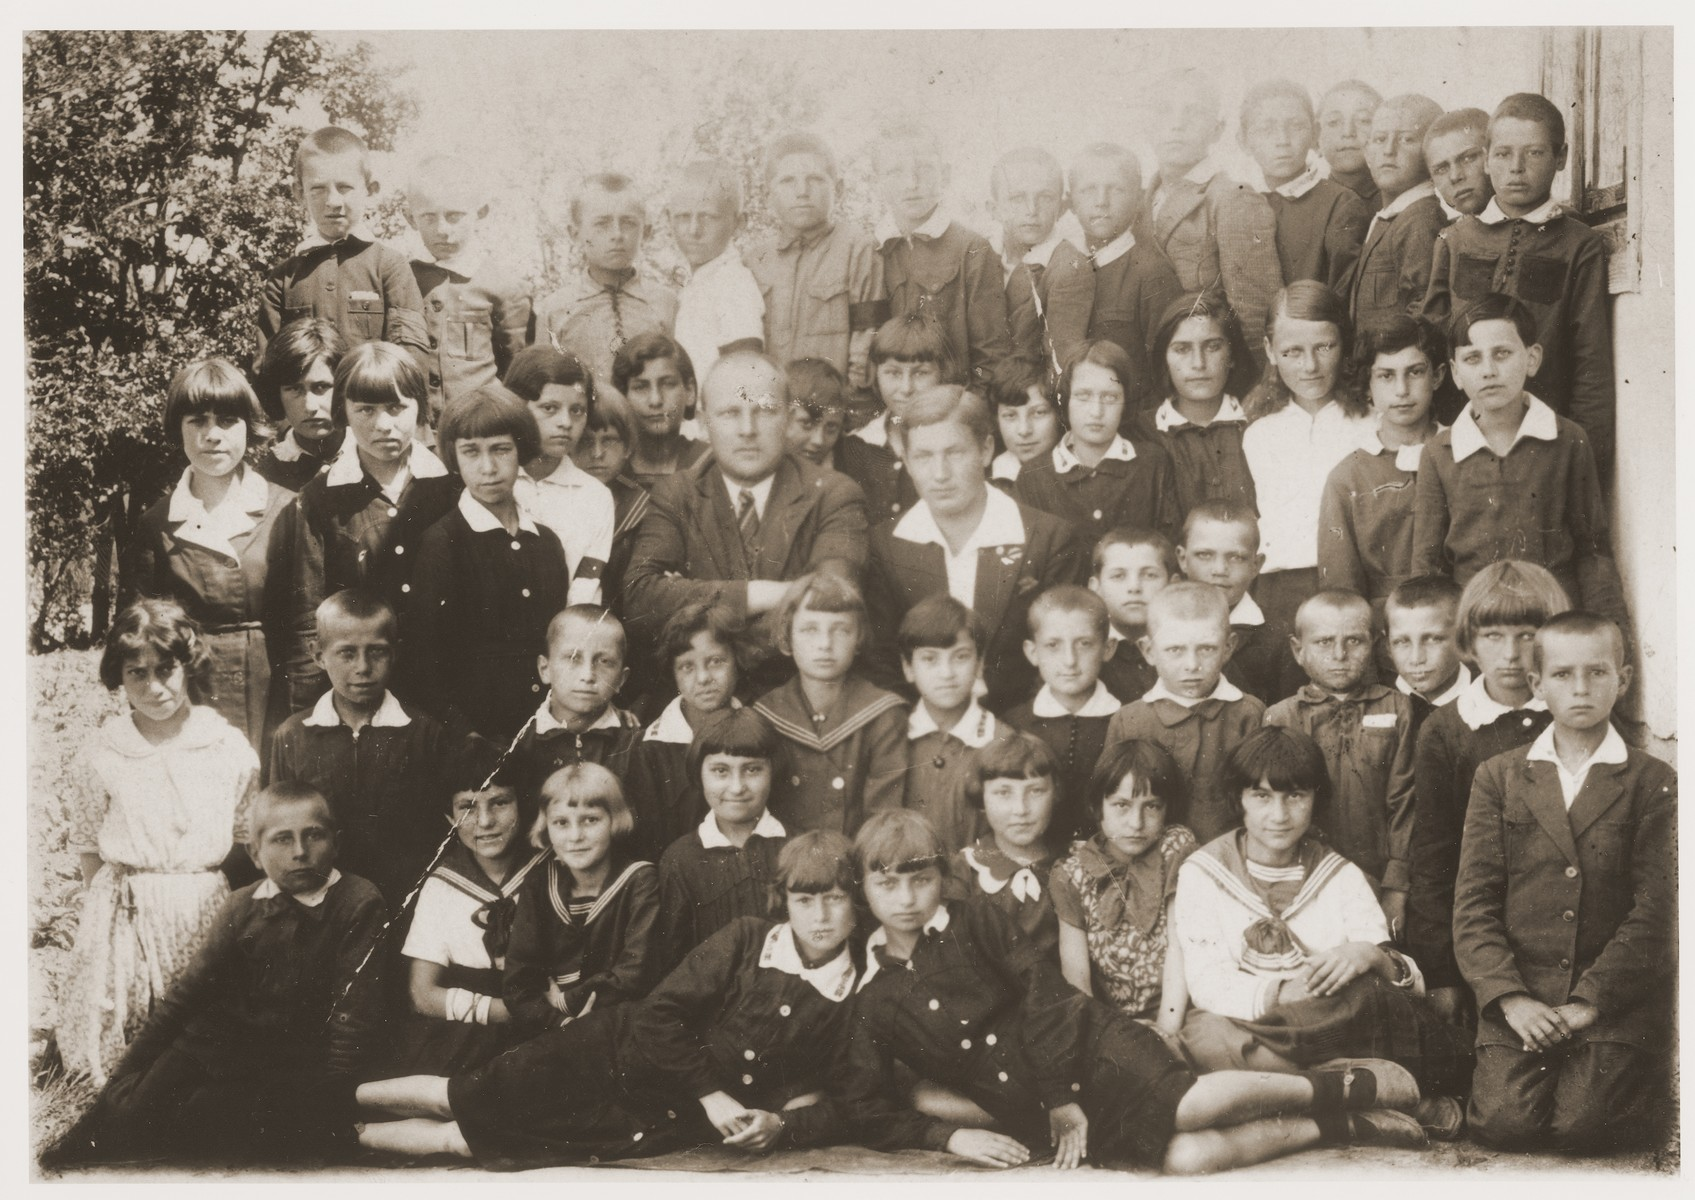 Group portrait of students at the elementary school in Kowel, Poland.   Nachman Pinsky, the donor's cousin, is seated in the front row, third from the right.